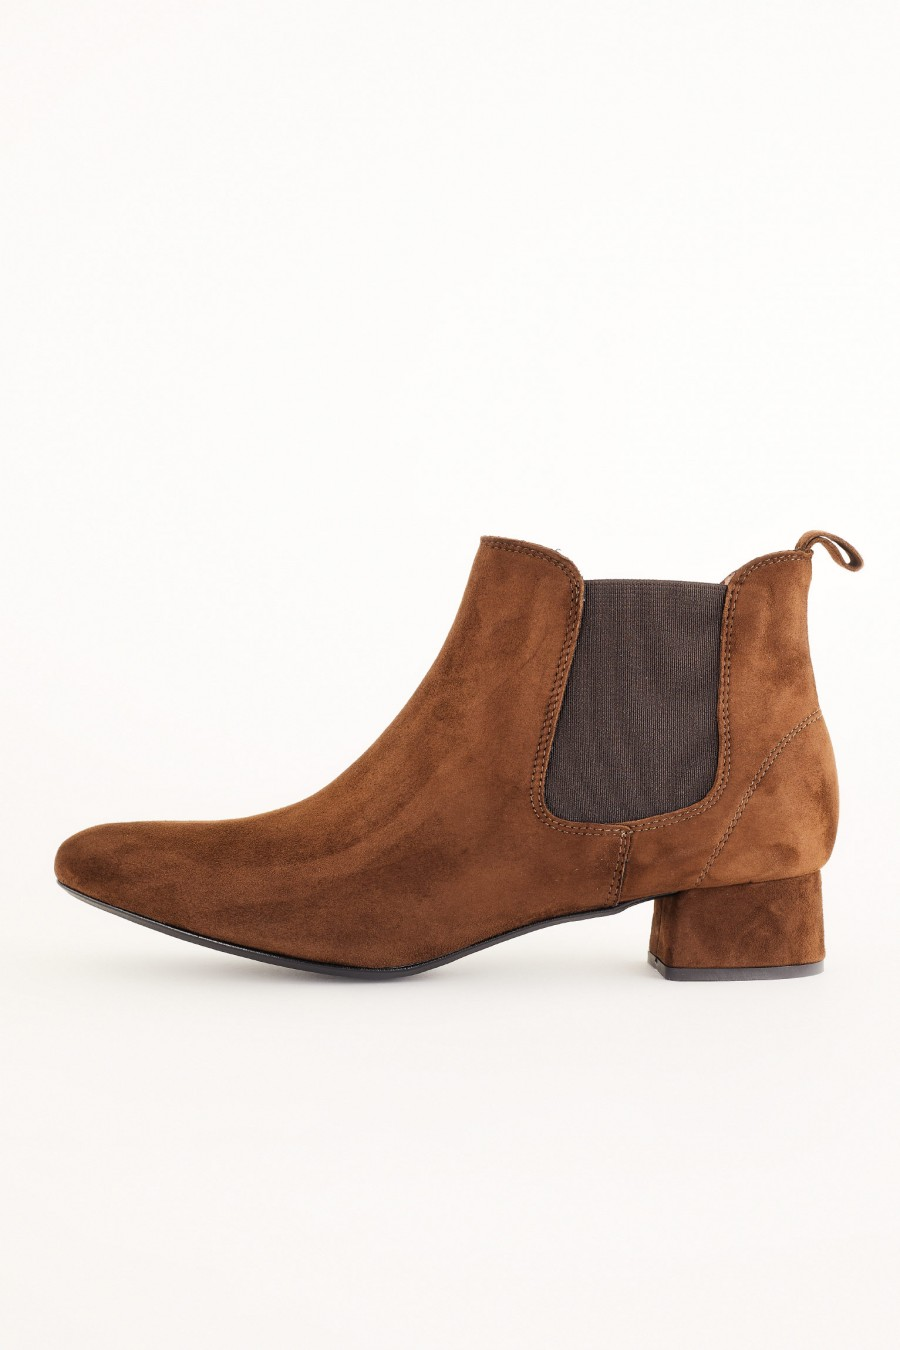 ankle boots to match with jeans